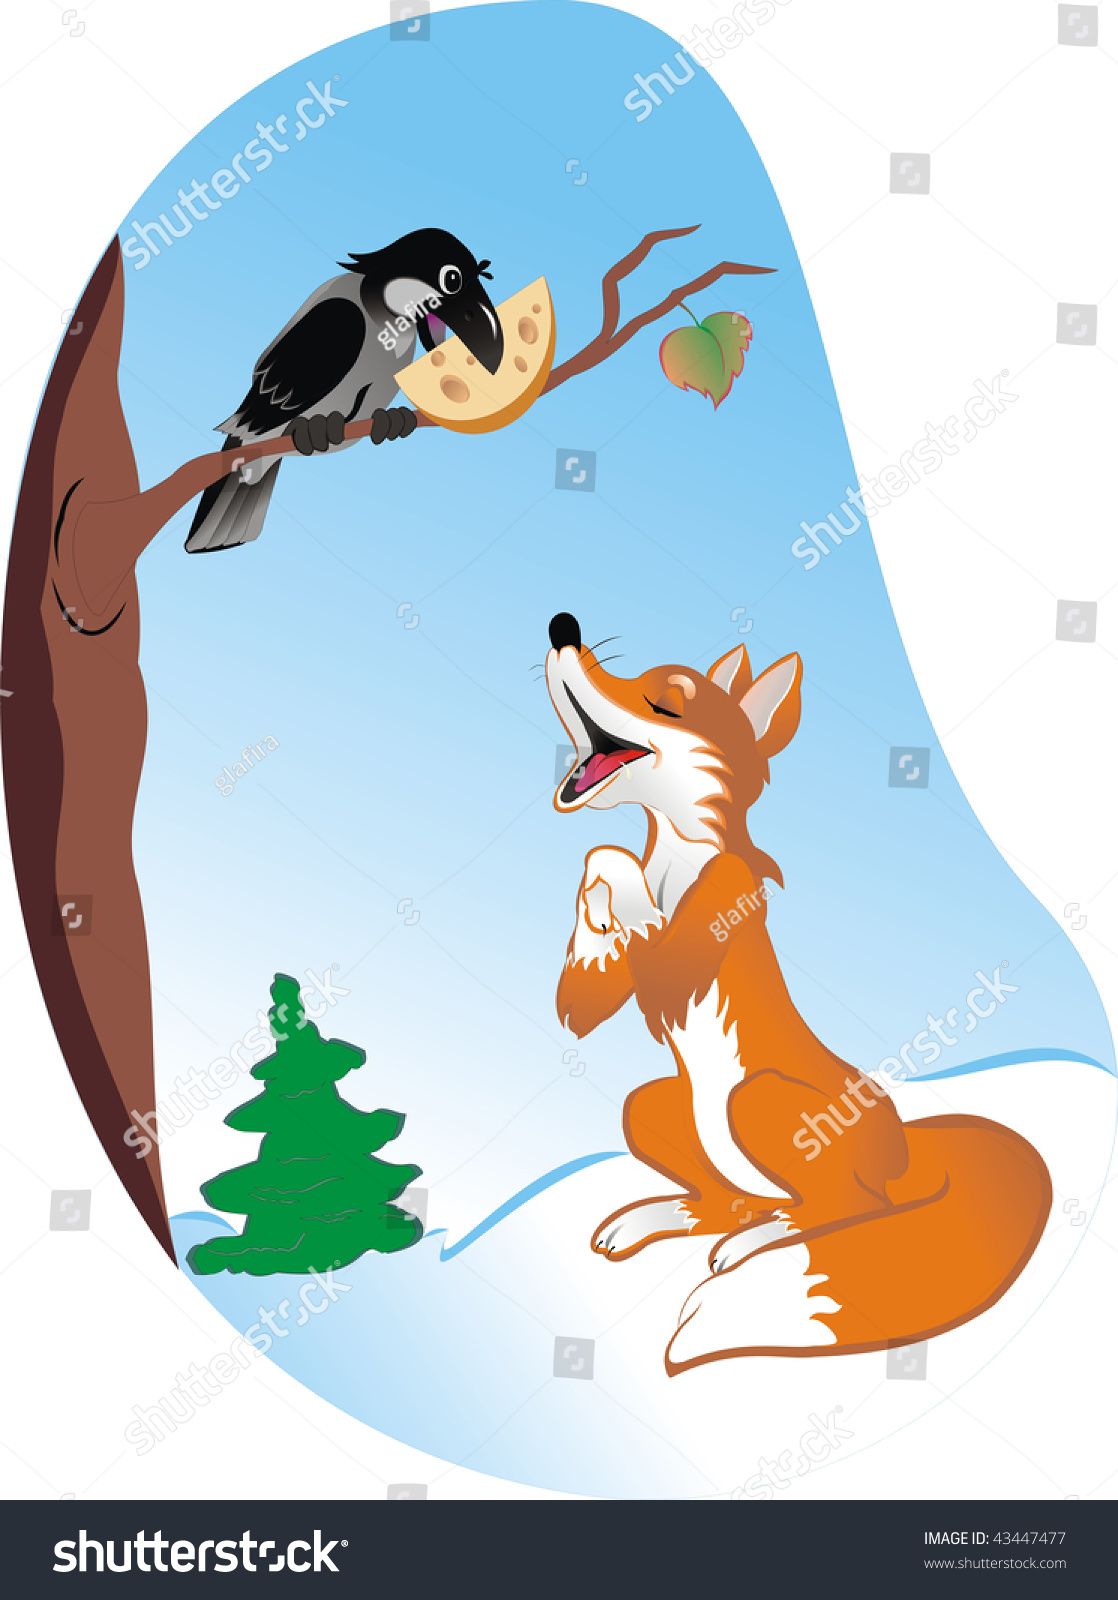 Stock Photo Raven Sits On A Tree Under A Tree On Snow The Fox Sits And Holds Cheese Vector likewise Animal Dot To Dots further Meet The Couple Who Cloned Their Dog Twice 542235715664 further 13 Amazing Cat Catches Bird You Never Seen Before in addition 938714571. on animal show dogs